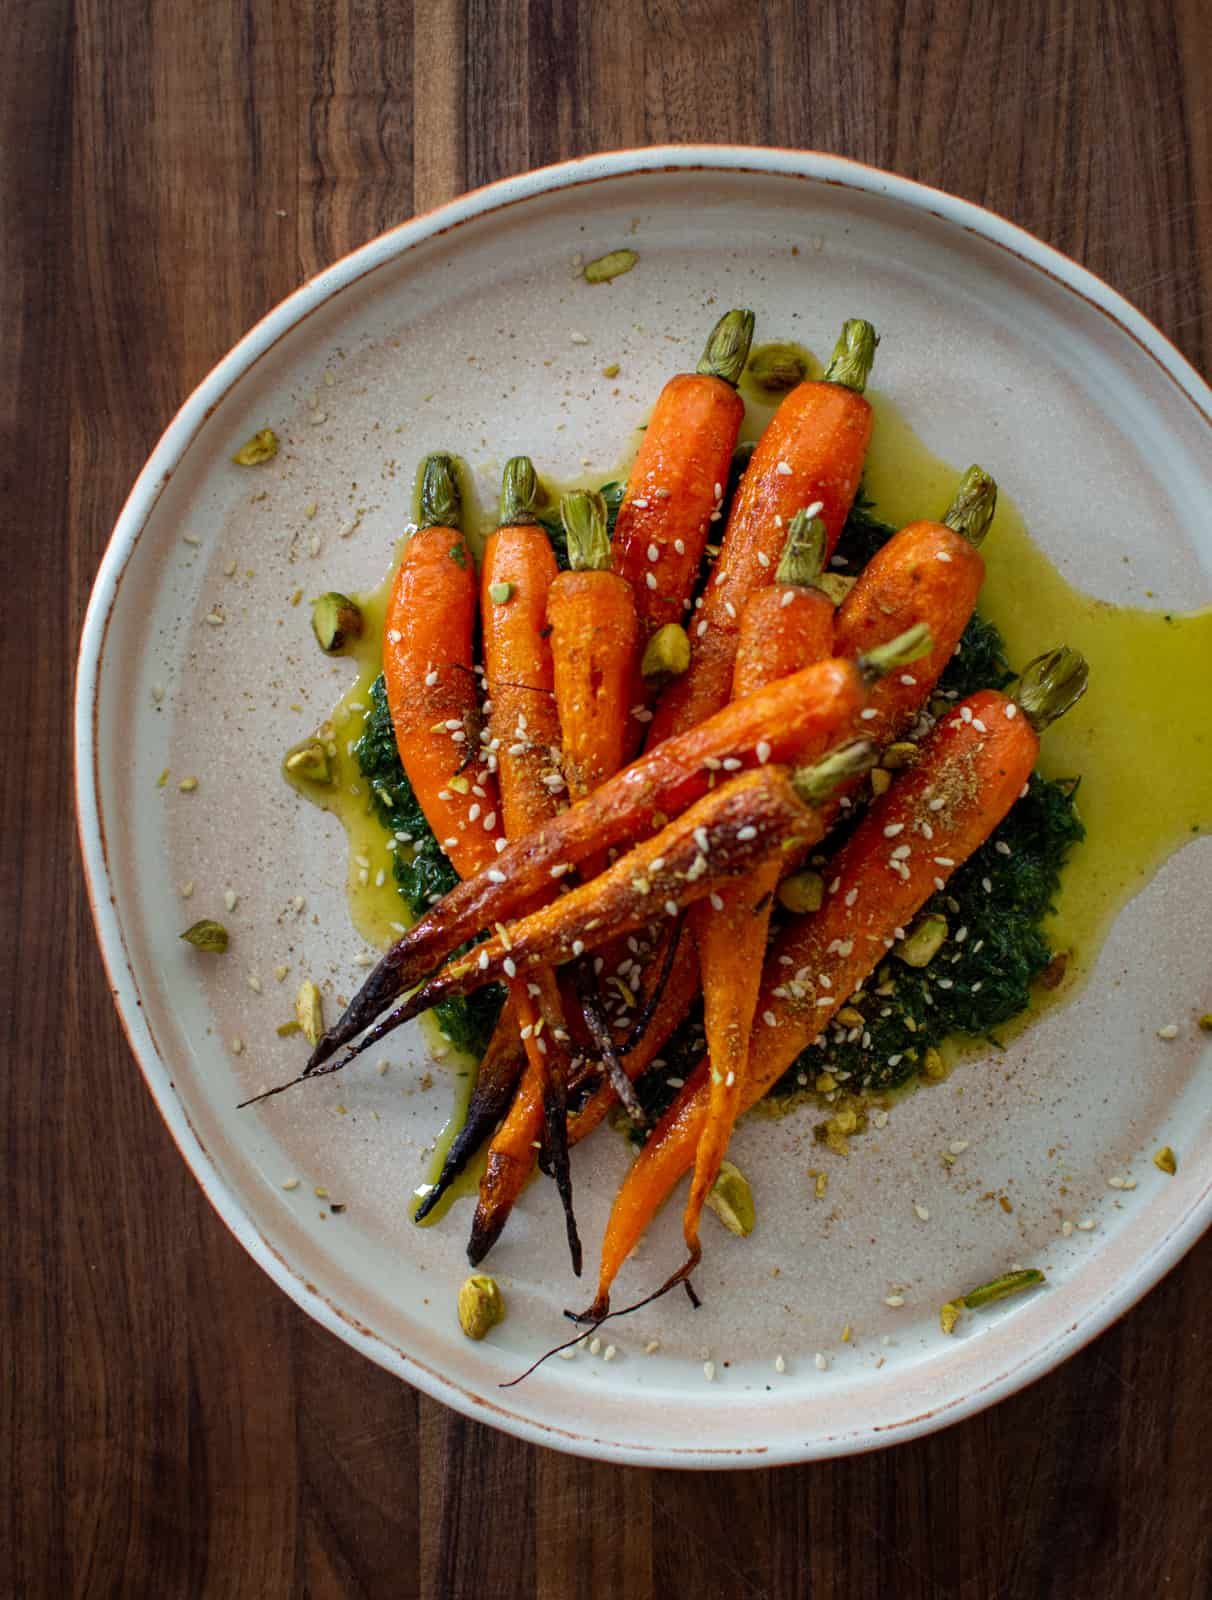 carrots, carrot top pesto and dukkah on a plate